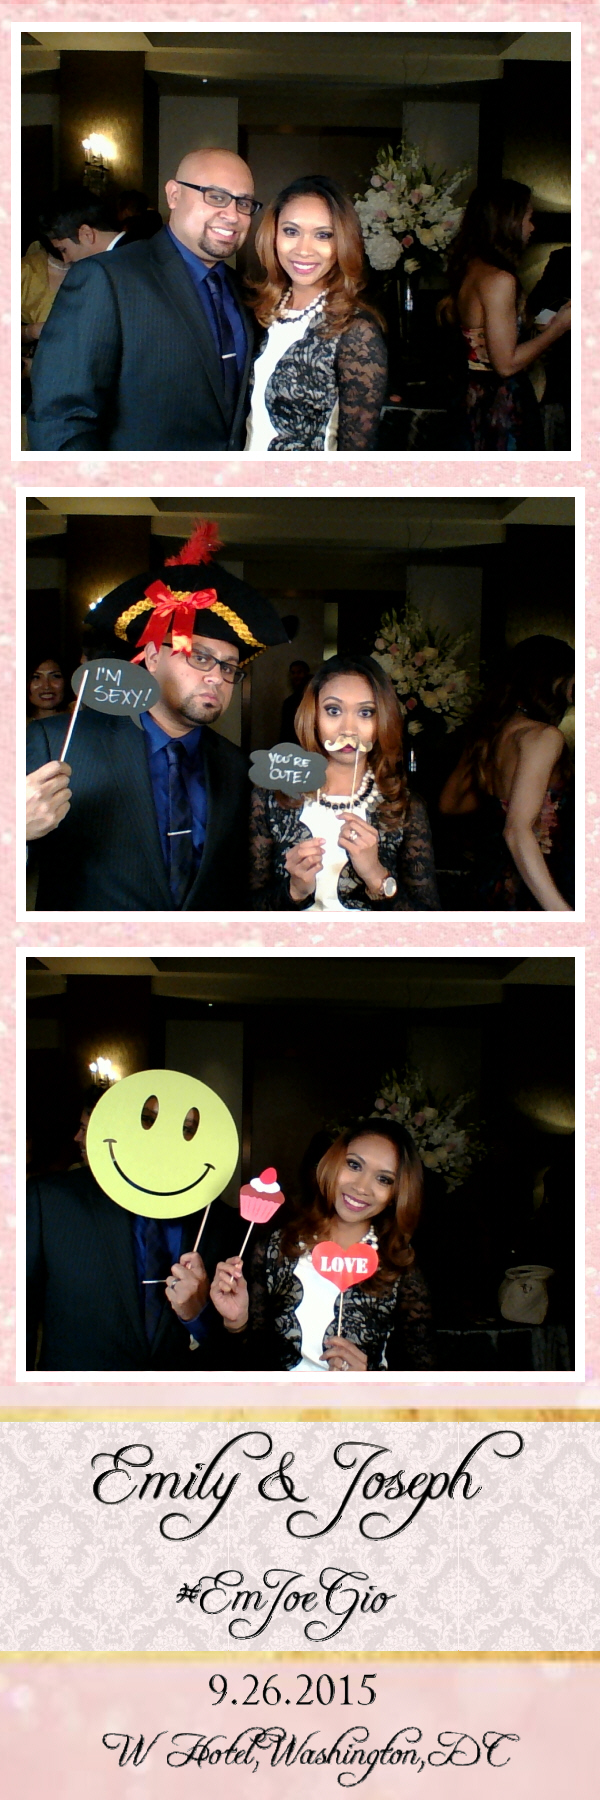 Guest House Events Photo Booth E&J (56).jpg